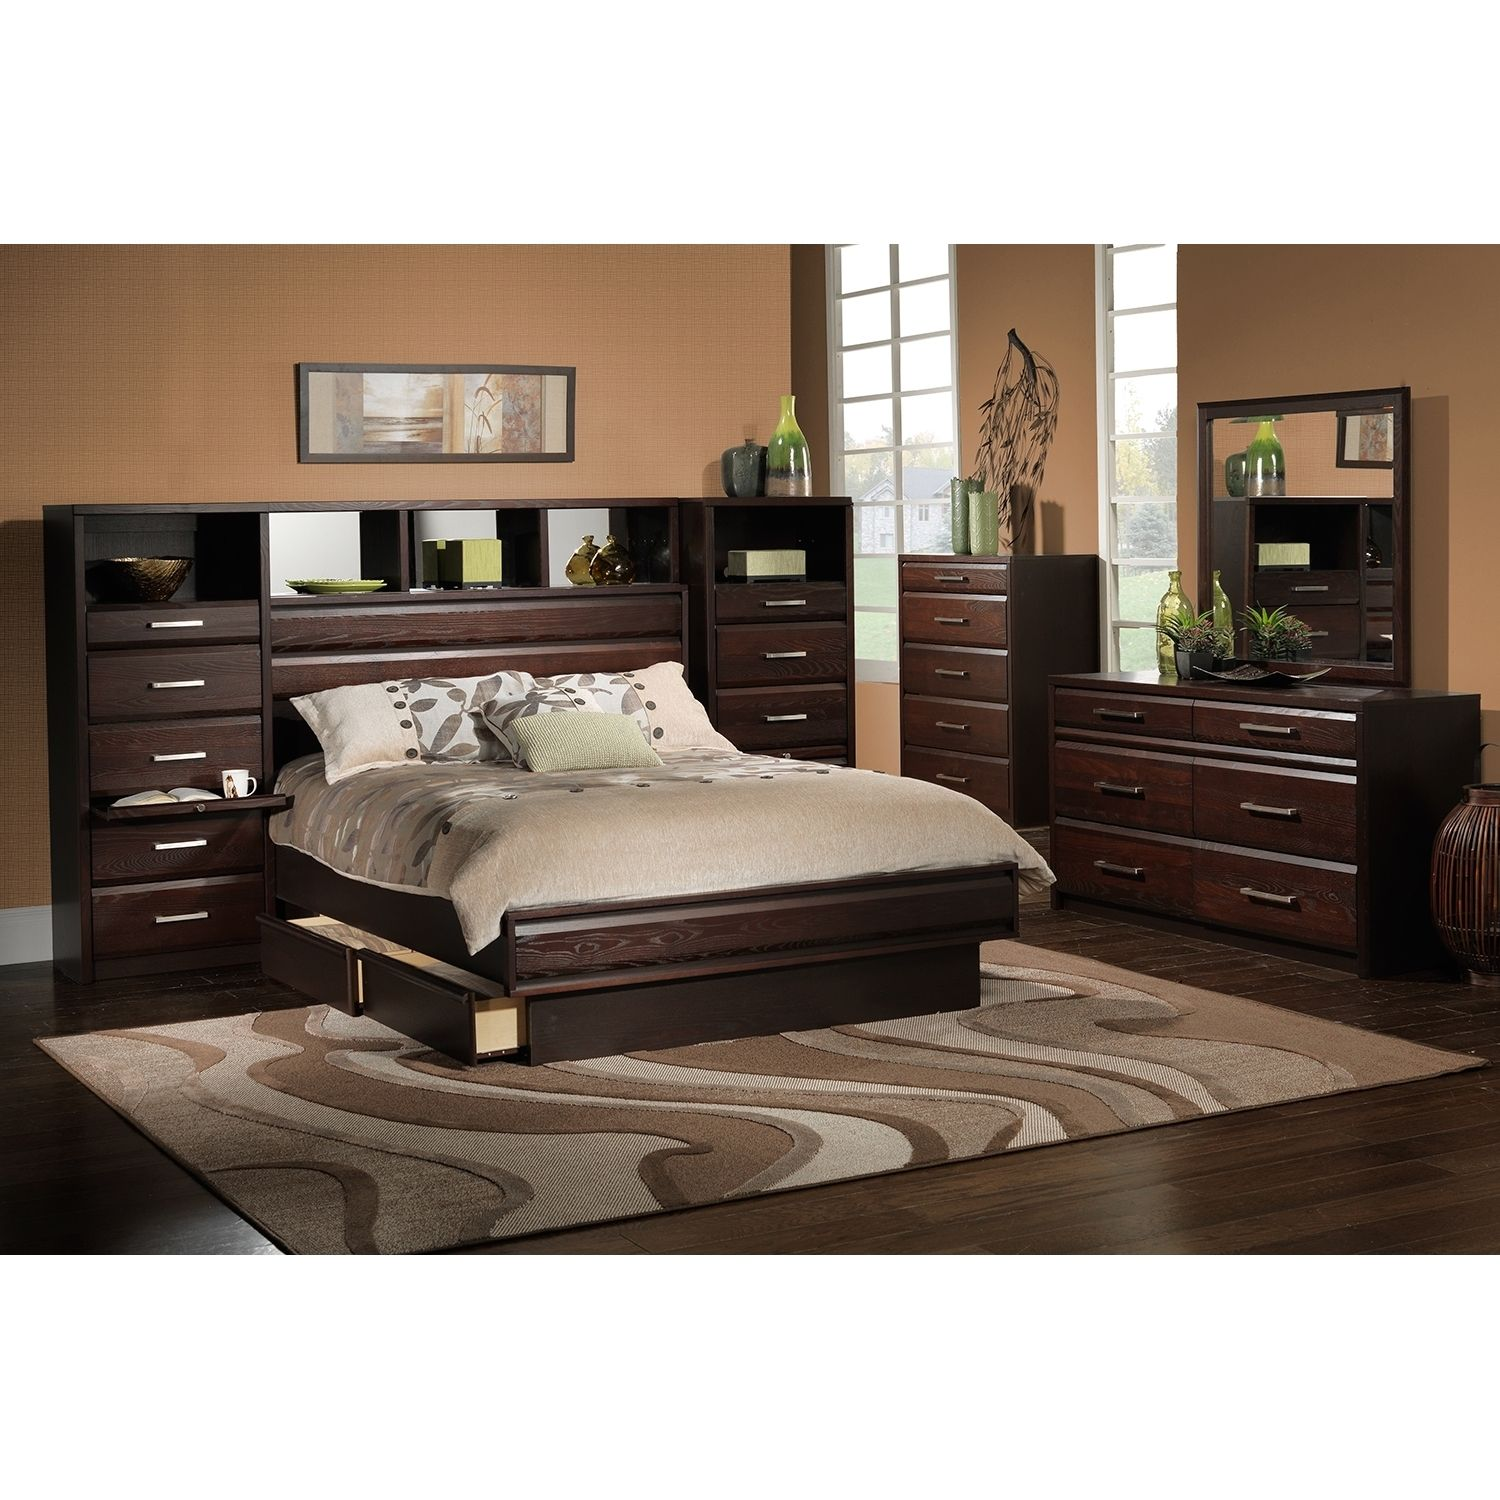 Tango Queen Wall Bed With Regard To Wall Unit Bedroom ...